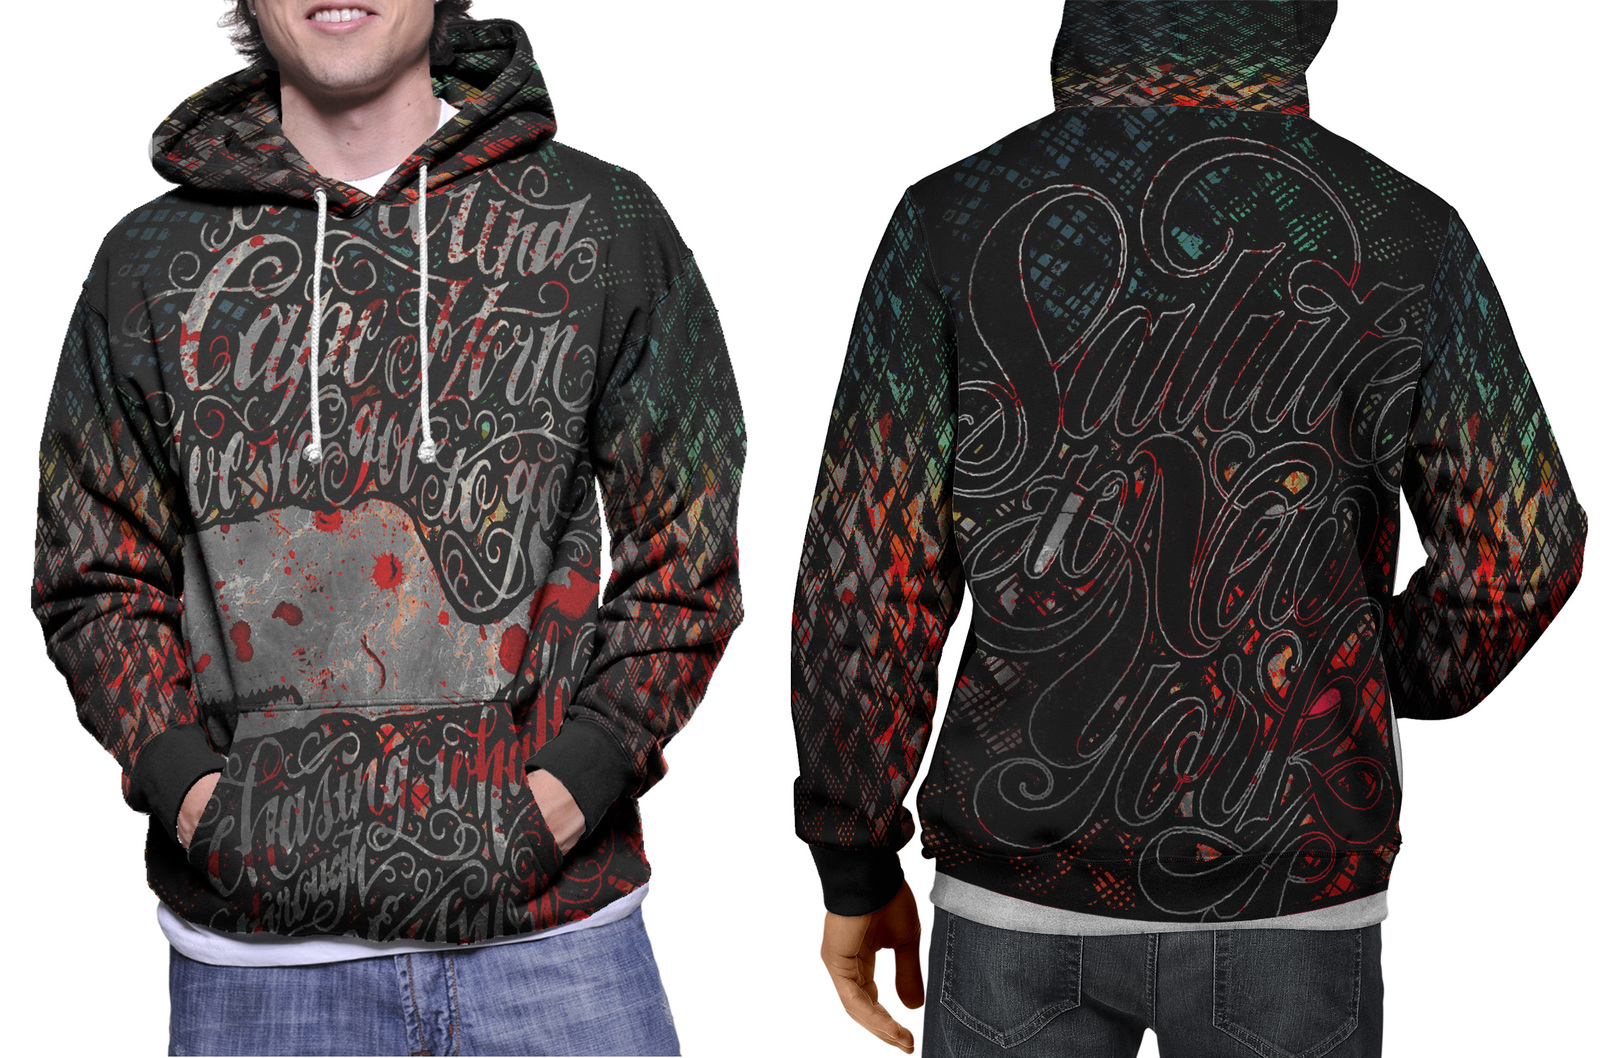 Primary image for Retro Collection #6 Men's Hoodie